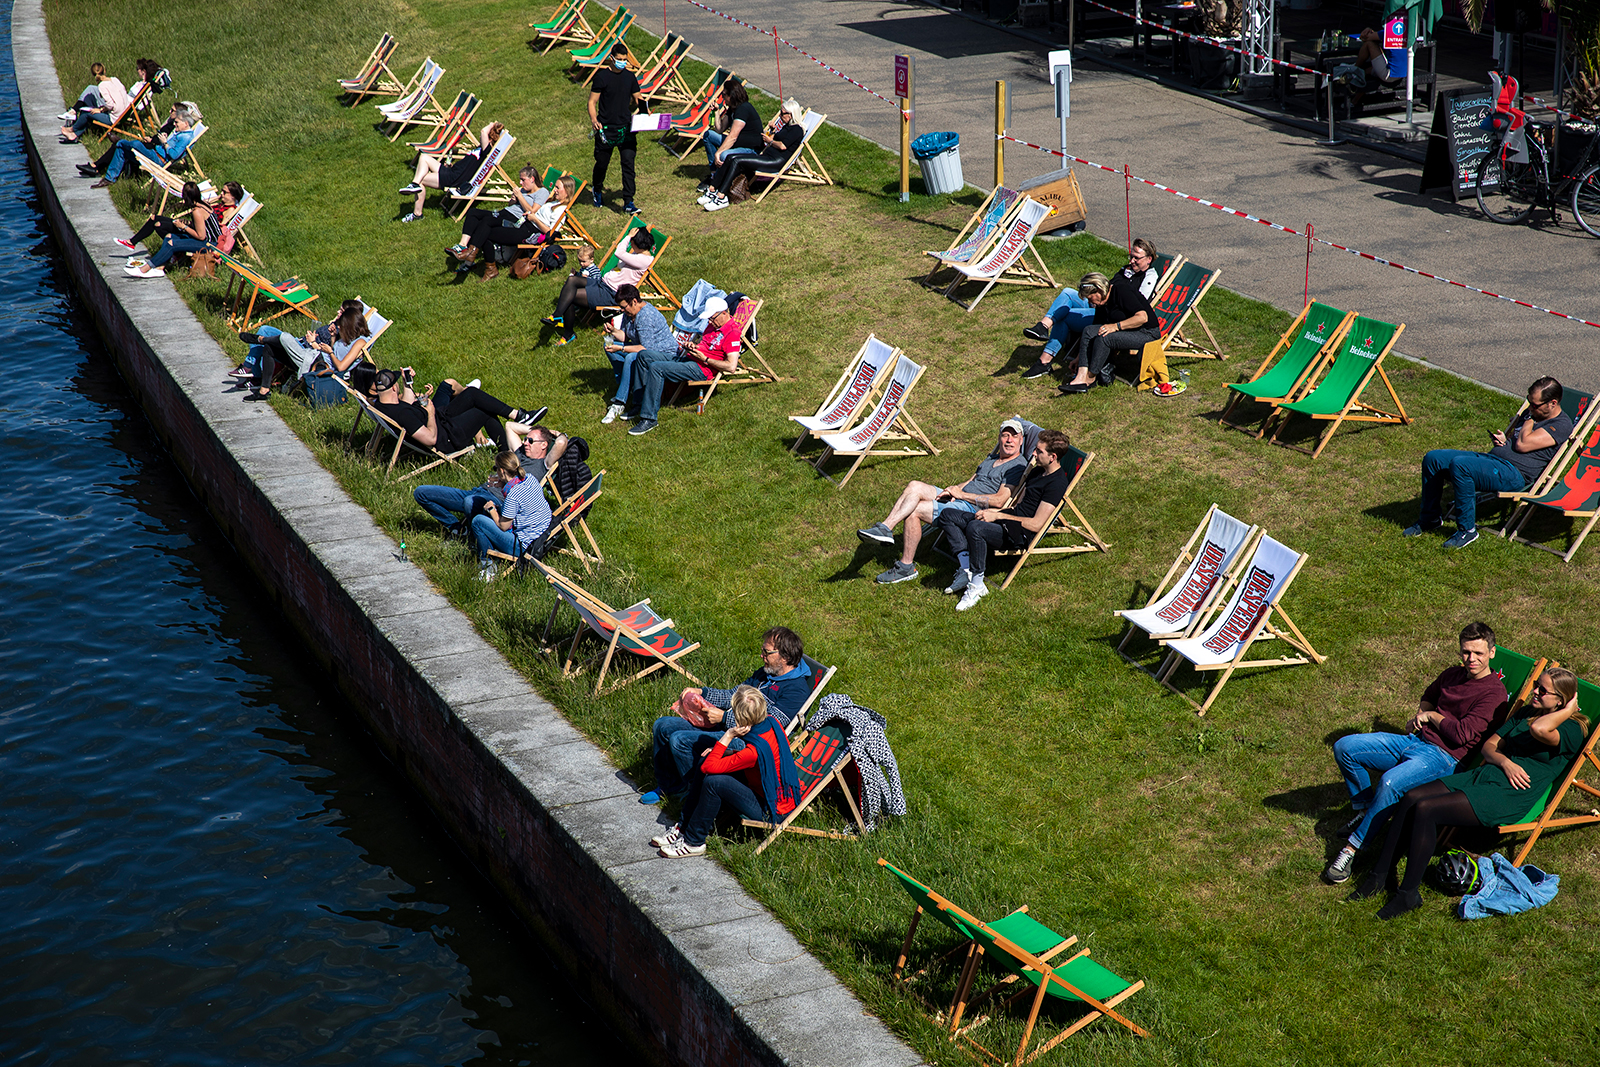 Visitors sit in a bar on chairs that are set apart to provide social distance during the coronavirus crisis on May 26, in Berlin.